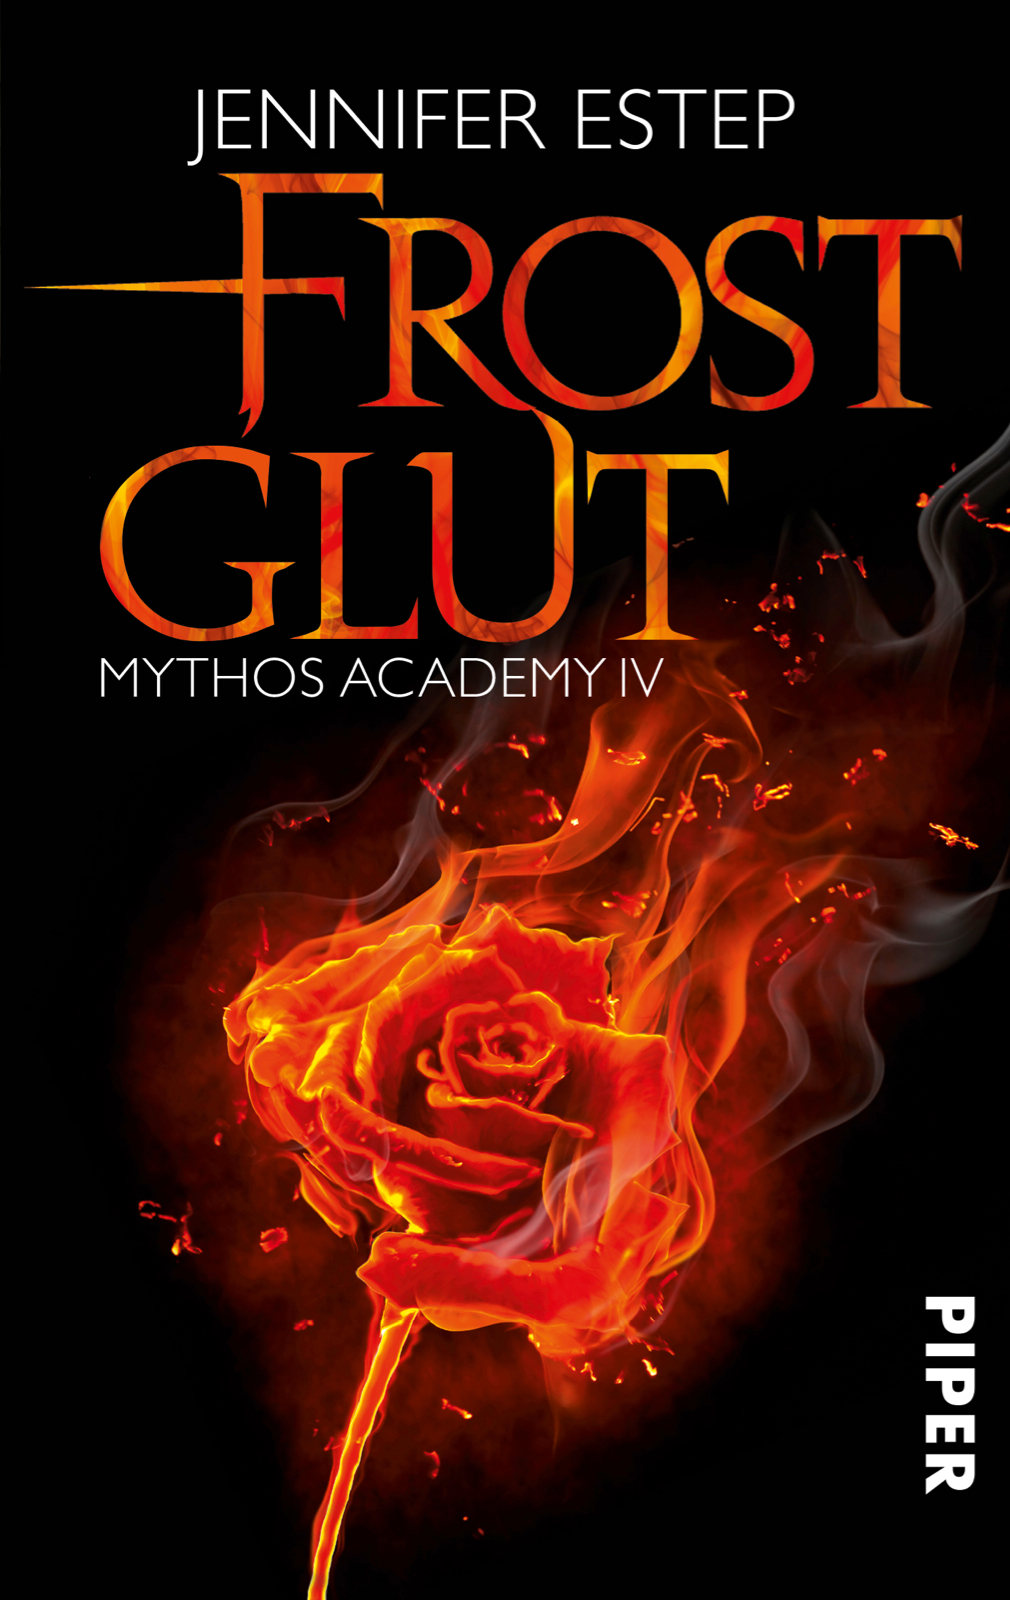 http://nothingbutn9erz.blogspot.co.at/2015/12/frostglut-jennifer-estep-piper-rezension.html